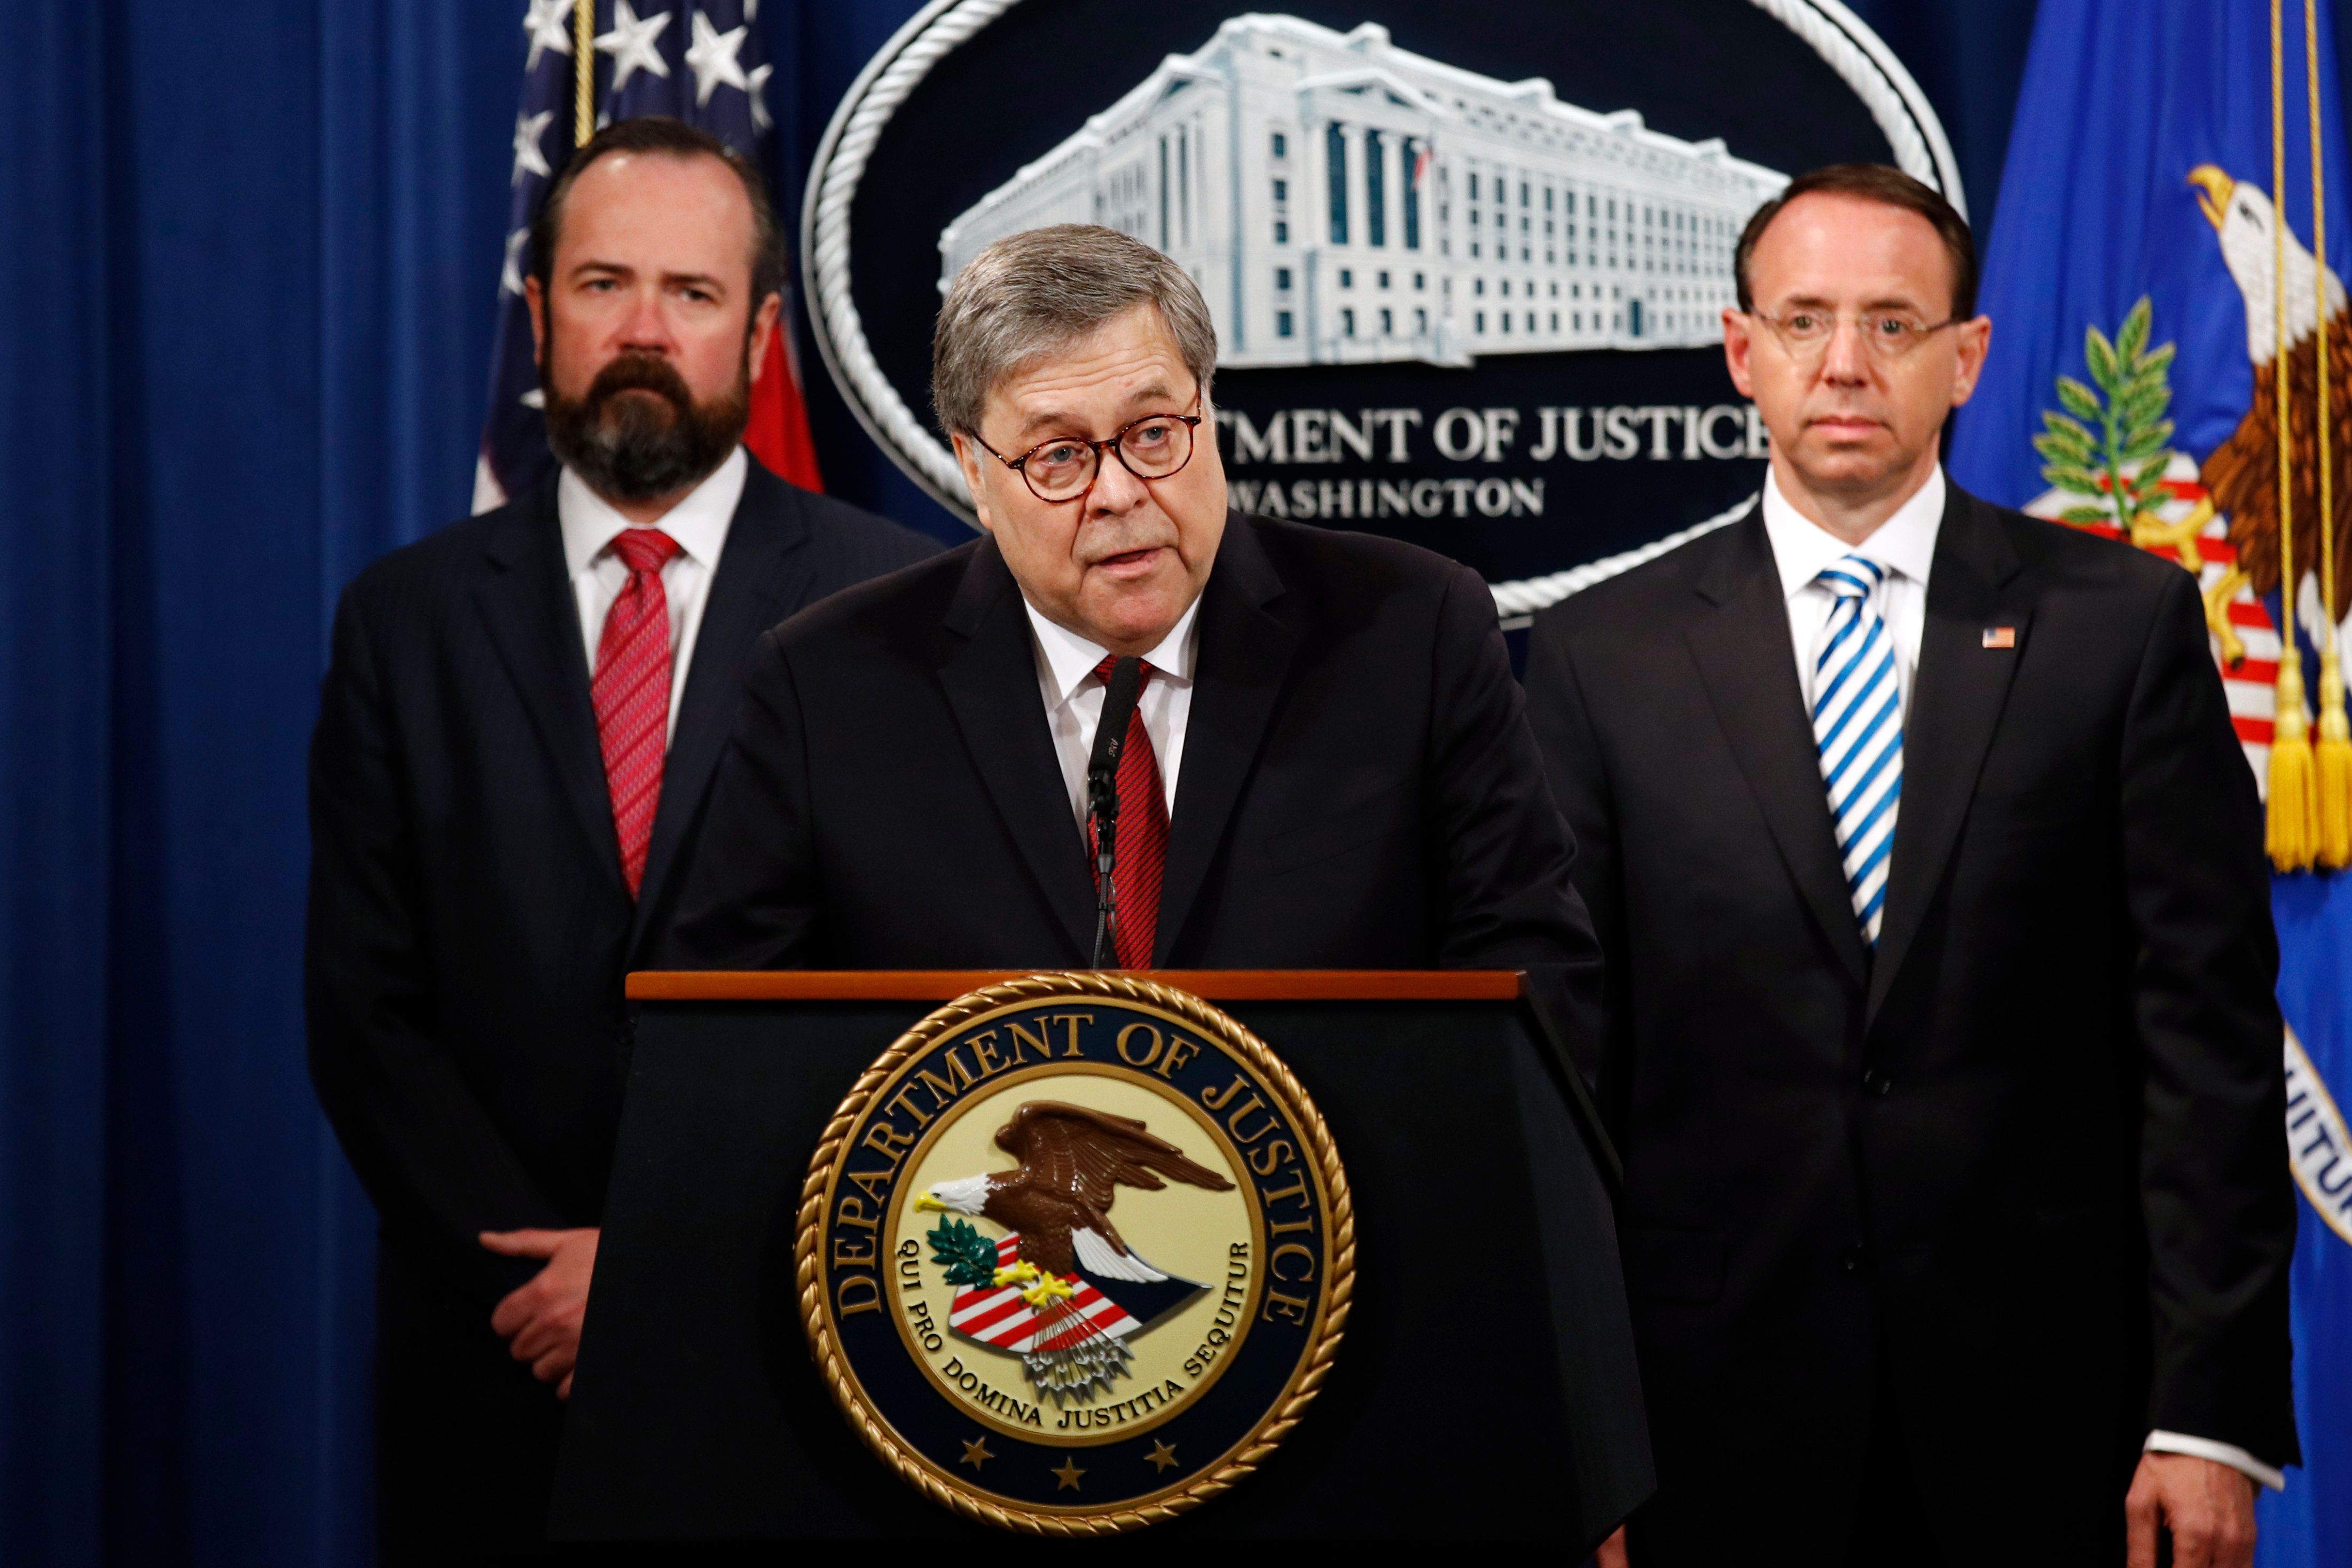 AG William Barr Goes To Bat For Trump Ahead Of Mueller Report Release